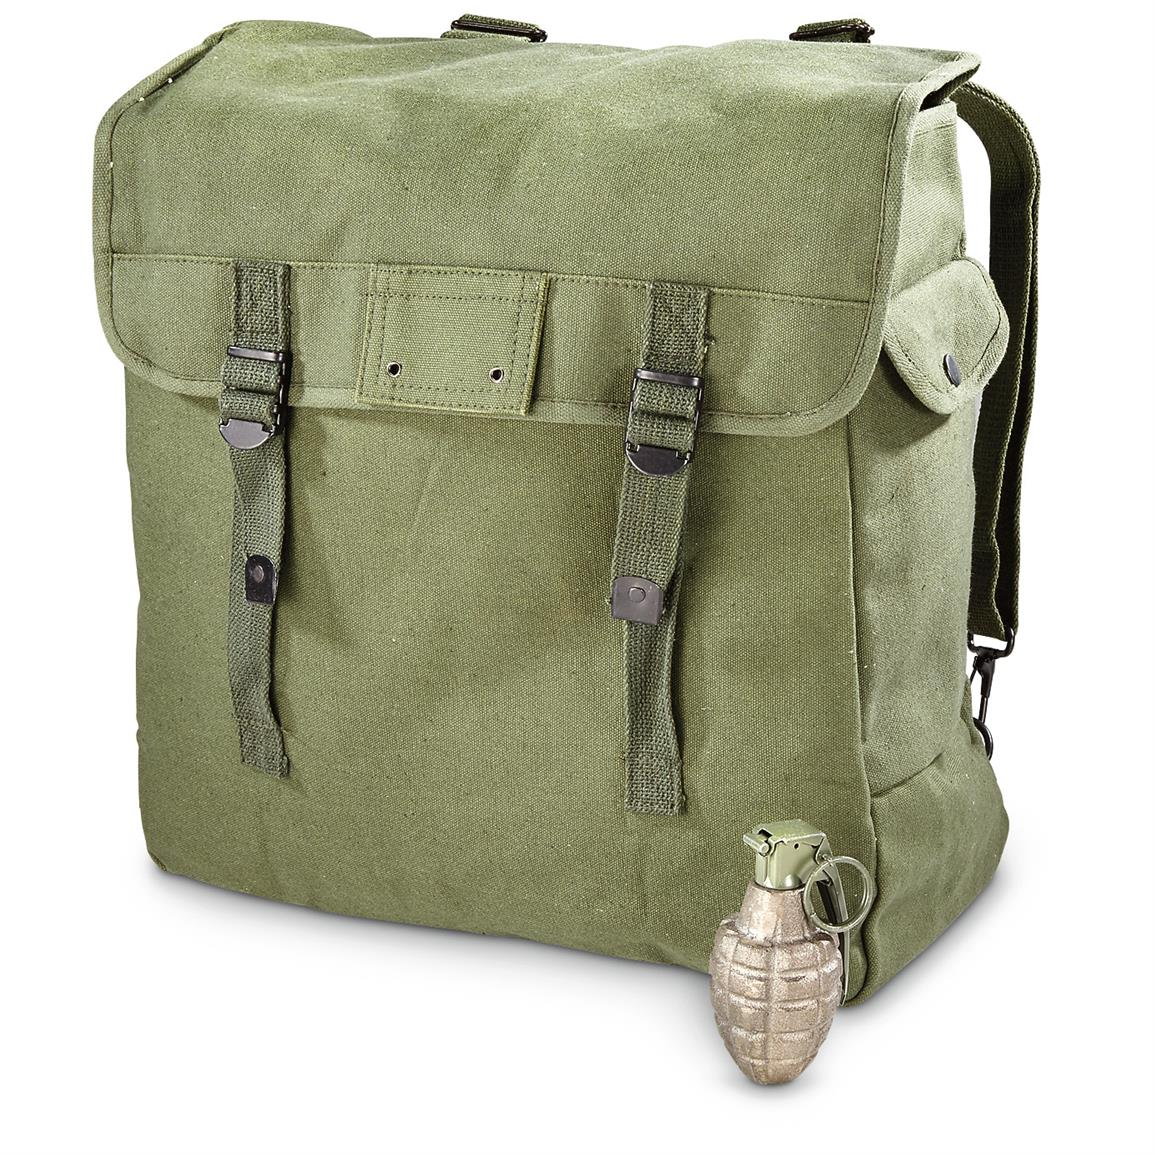 Military-style Canvas Musette Bag, Olive Drab